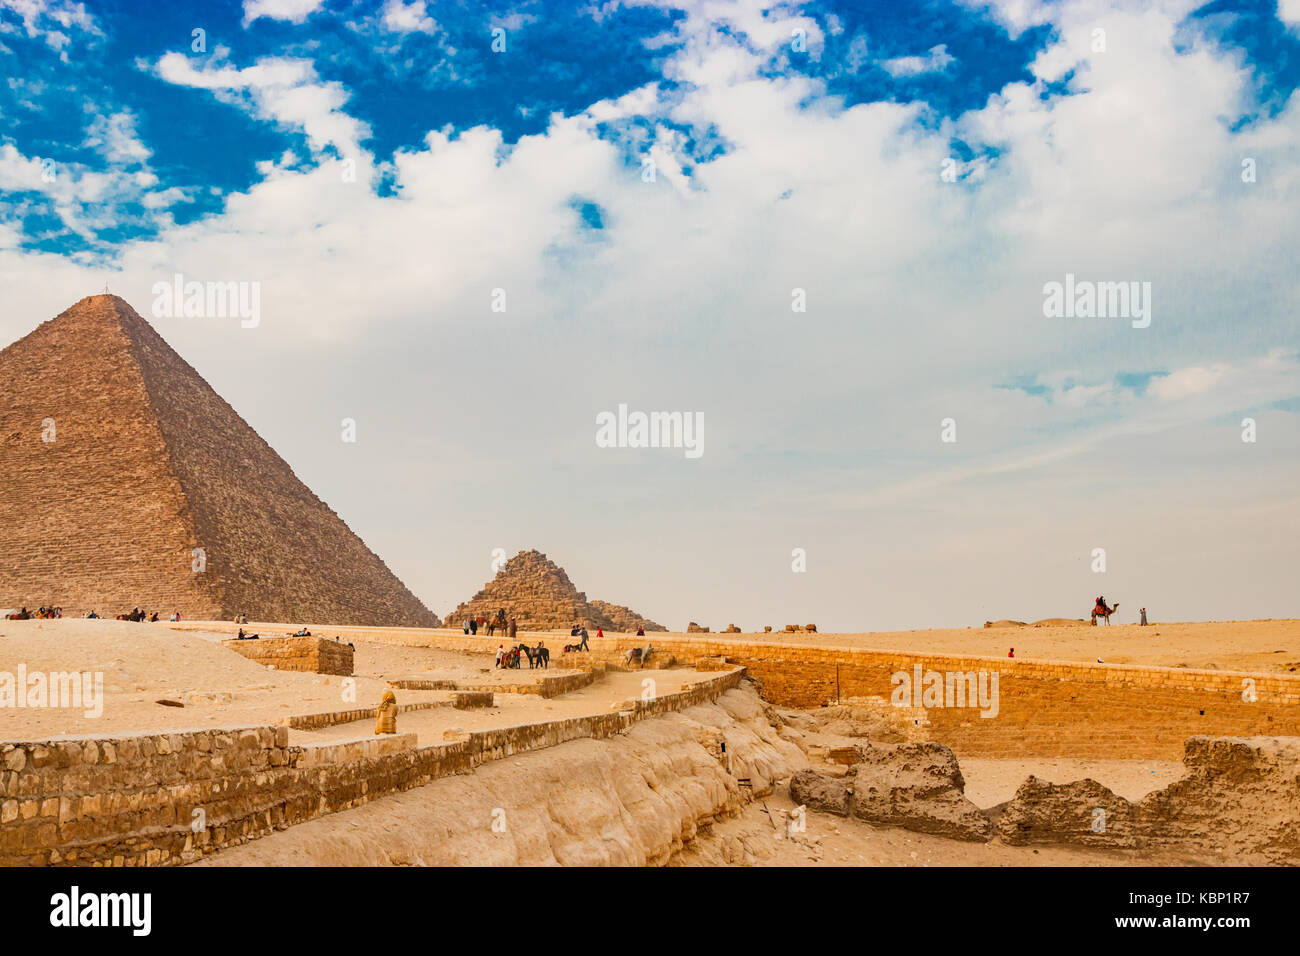 The ancient pyramid in Cairo, Egypt - Stock Image